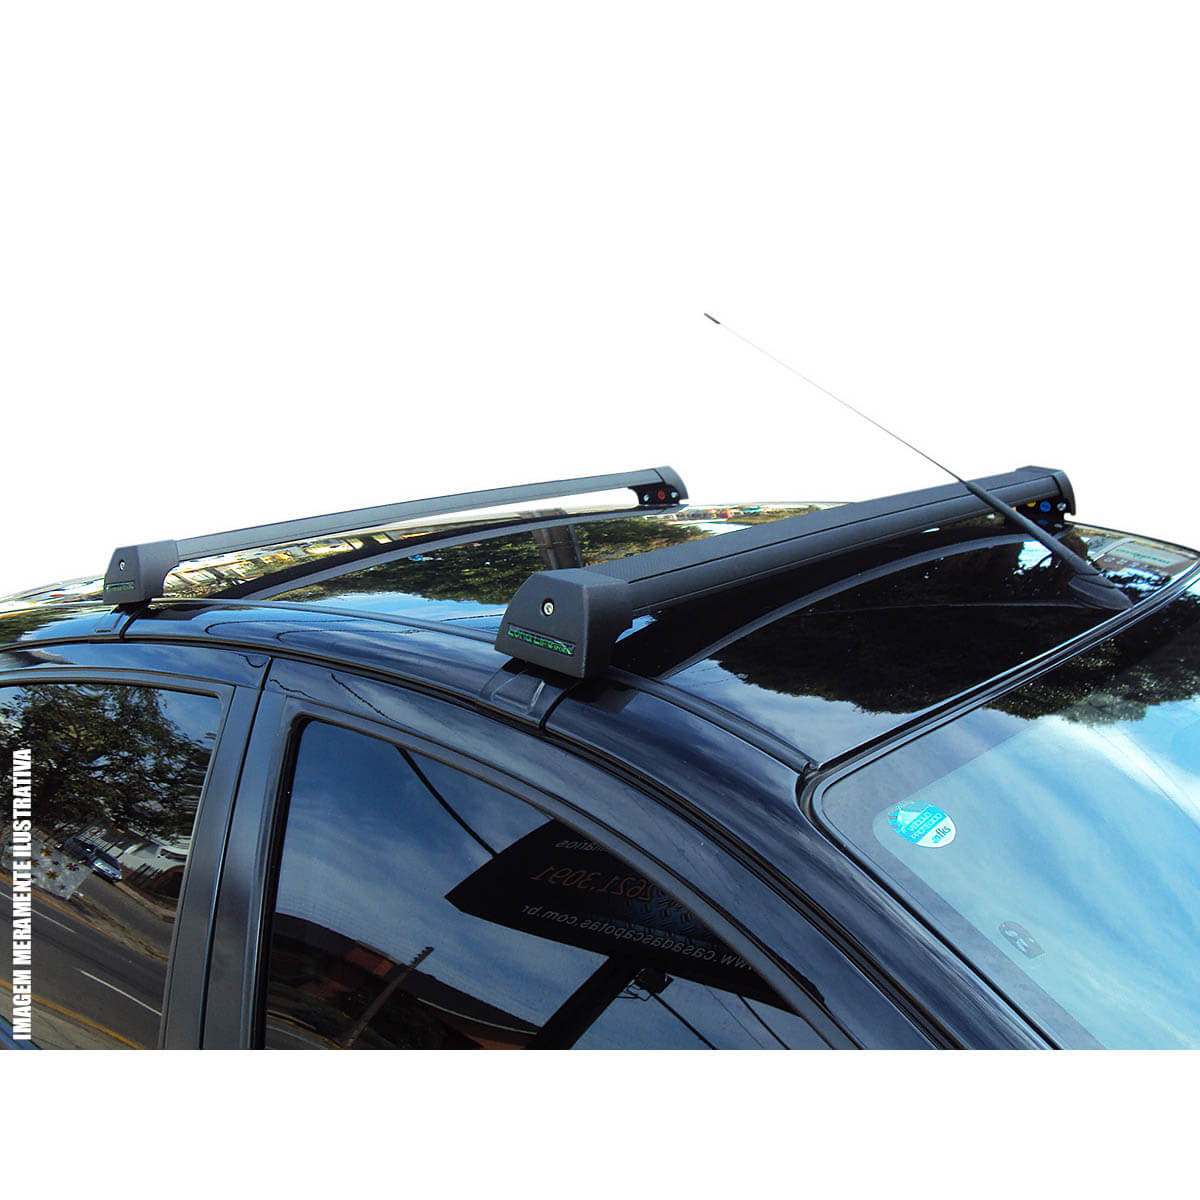 Rack de teto Fit 2009 a 2014 Long Life Sports preto